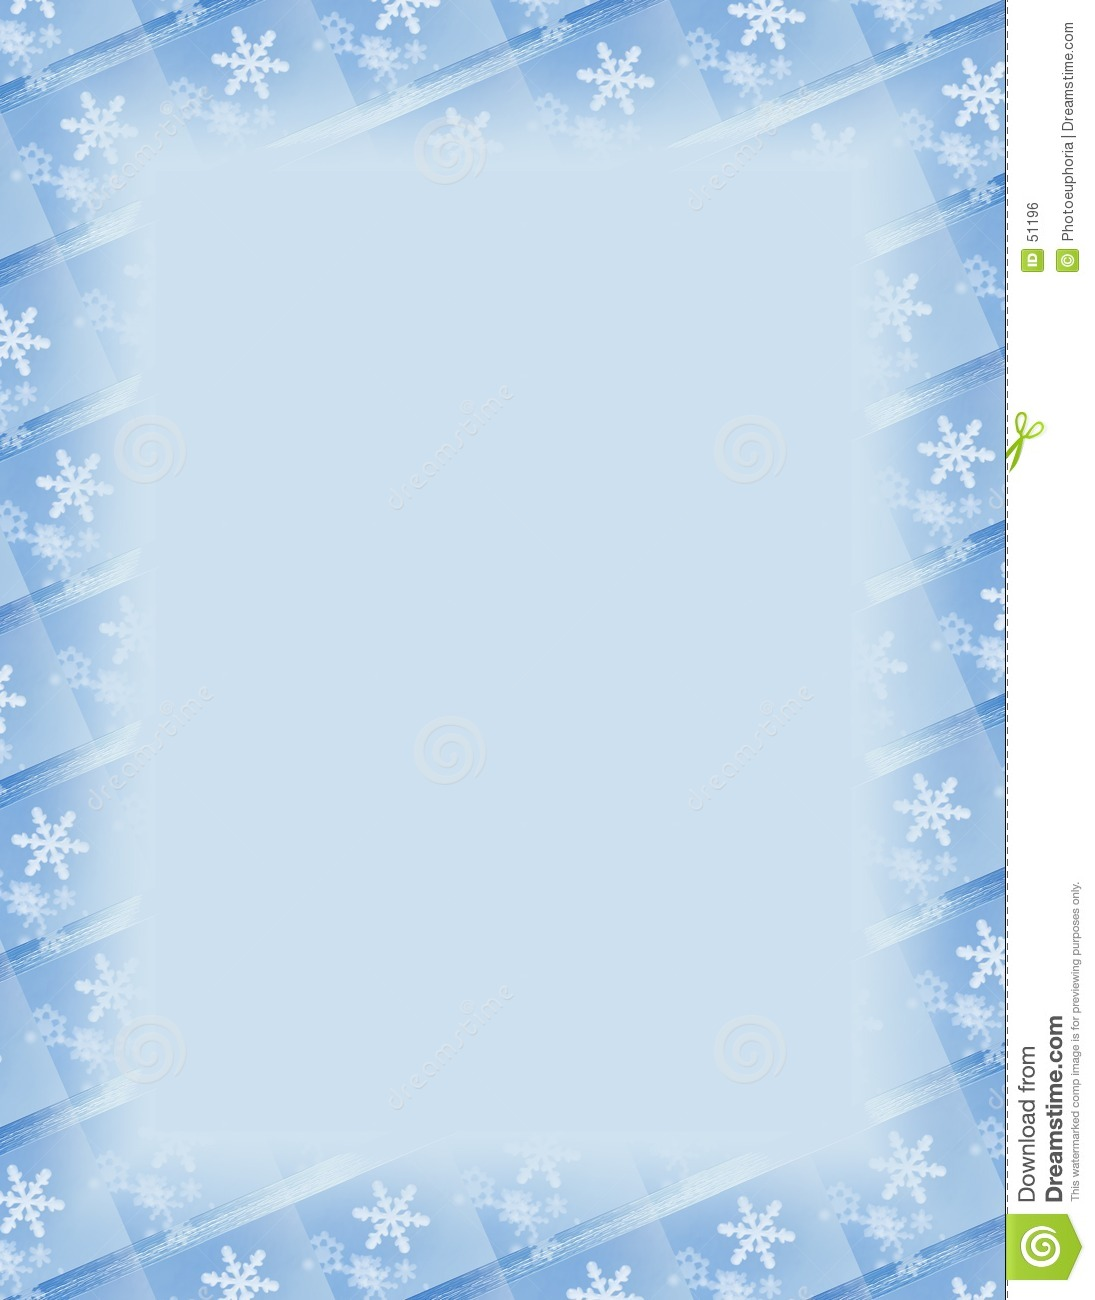 Snowflake Tile Border Over Blue Royalty Free Stock Image - Image ...